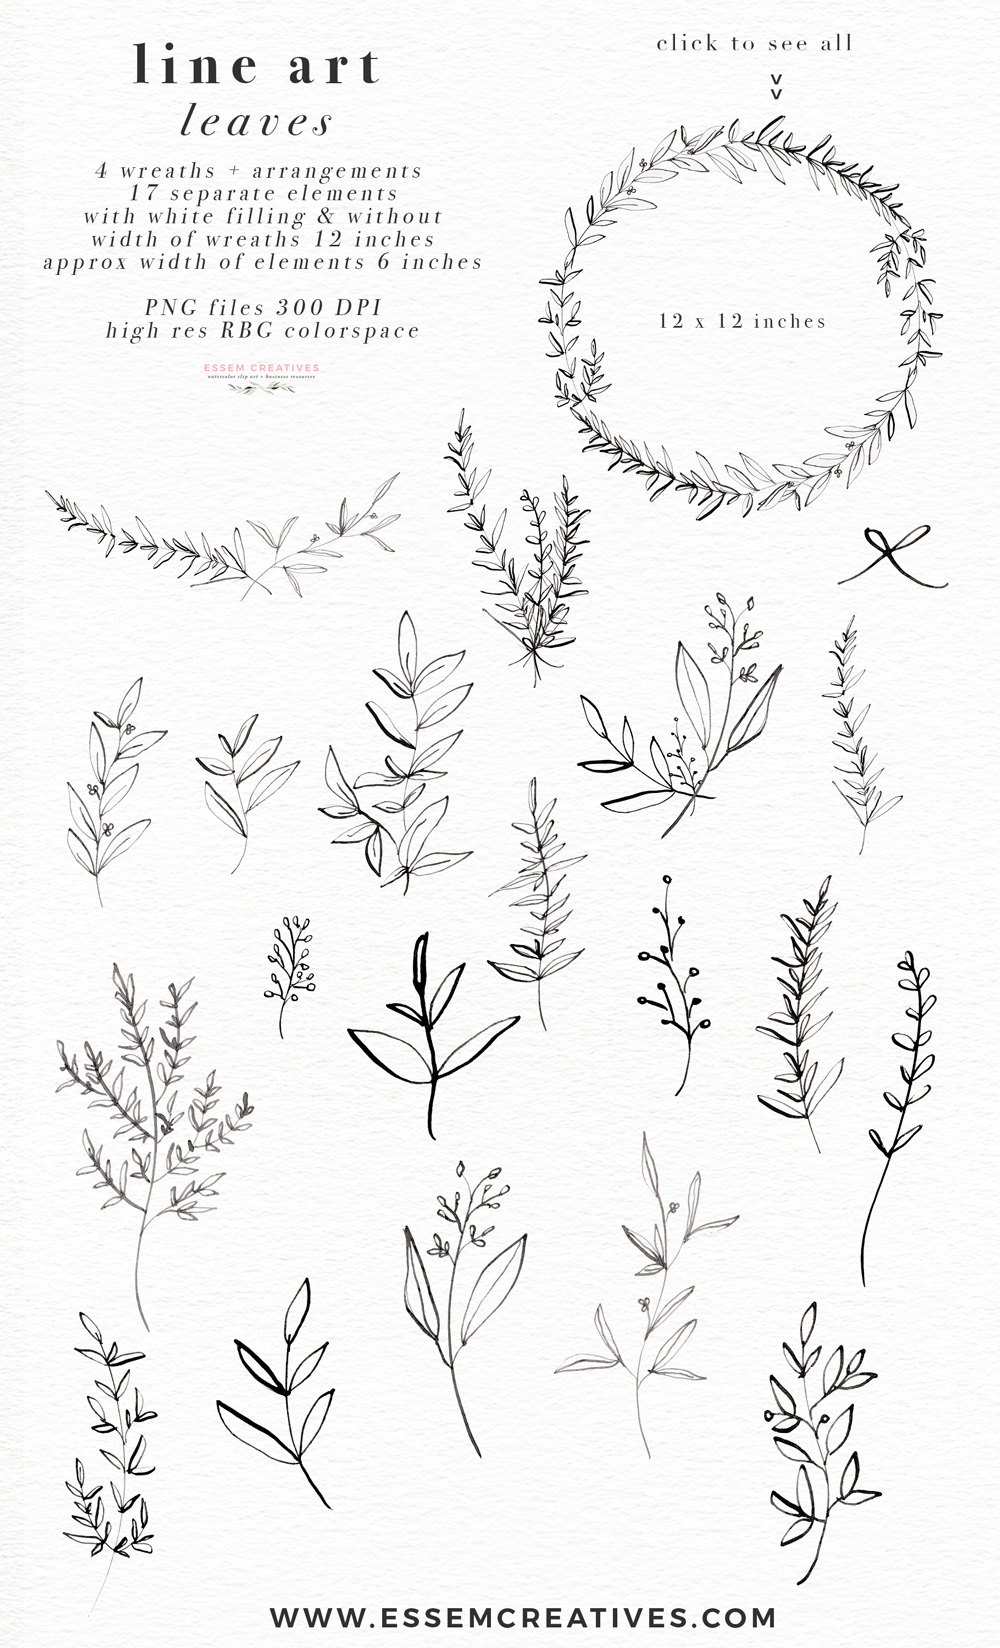 Line Art Leaves Clipart, Botanical Print Illustration.